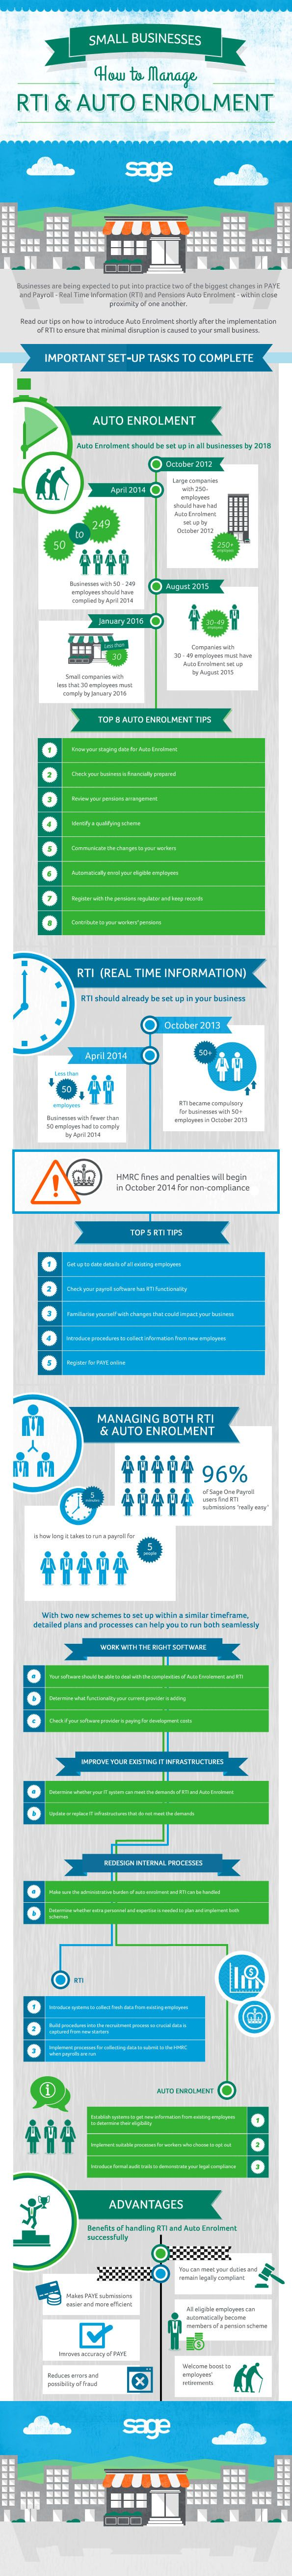 How to Manage RTI and Auto Enrolment #infographic #Business #SmallBusiness